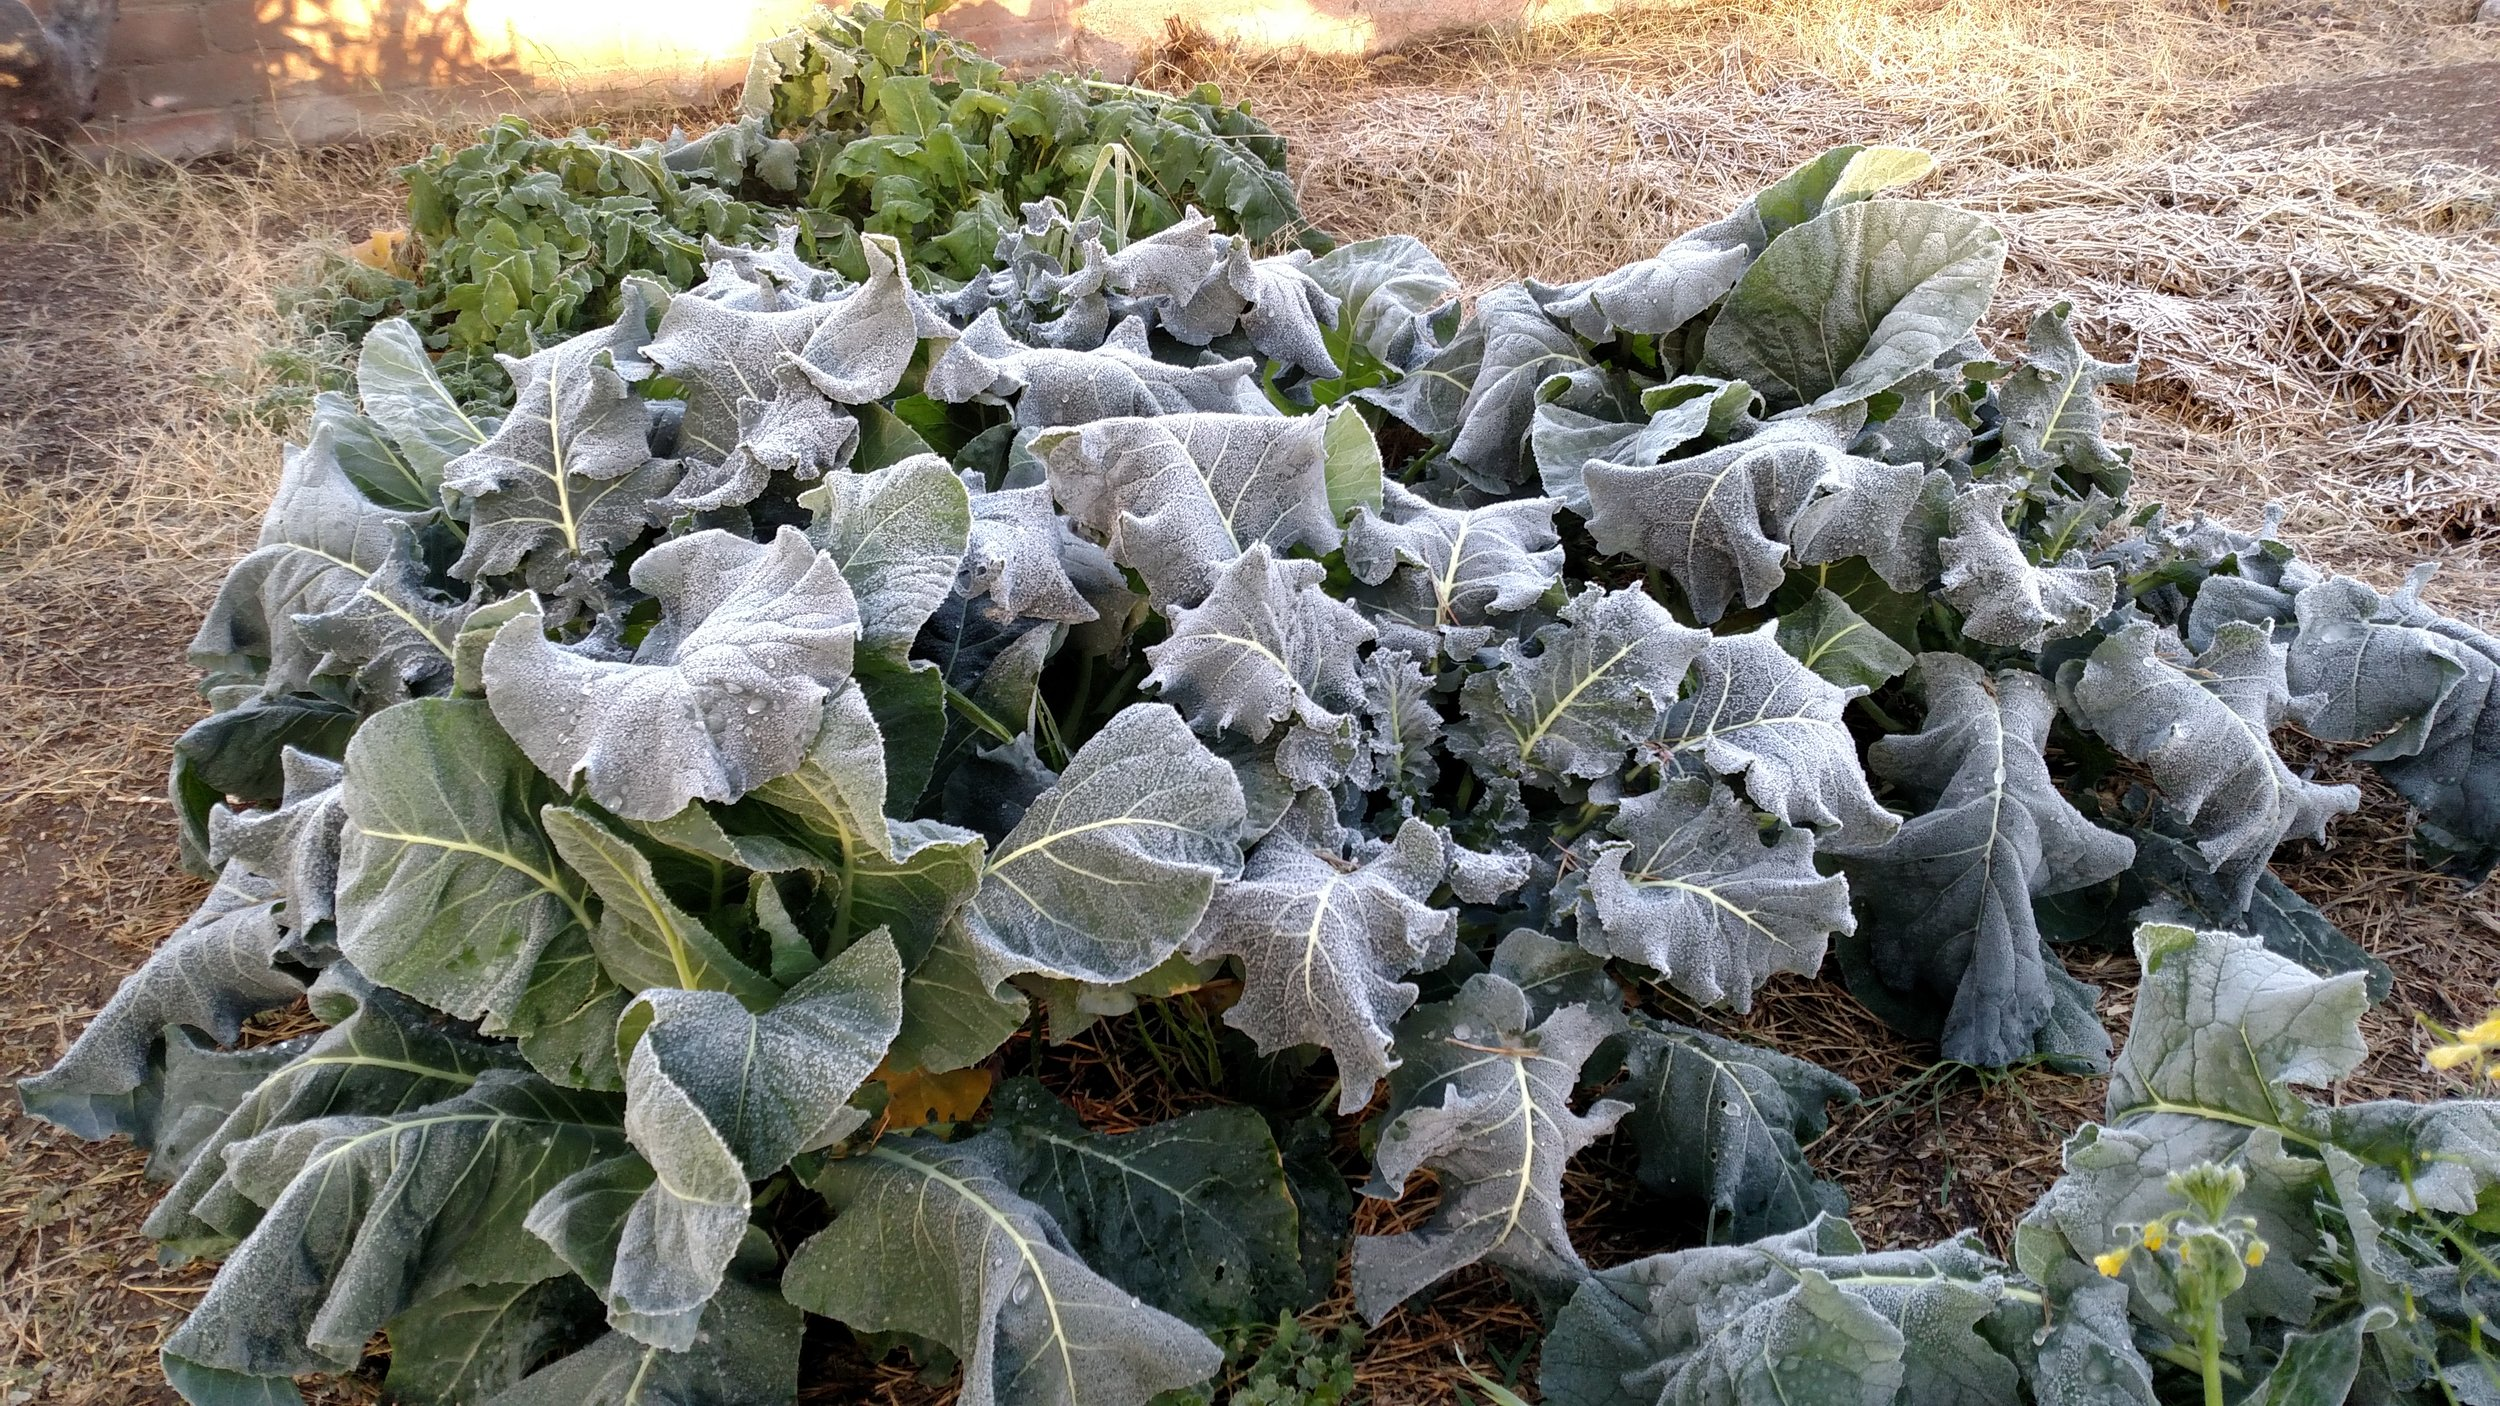 Although it looks bad, these broccoli plants will quickly recover as soon as the sun warms them.